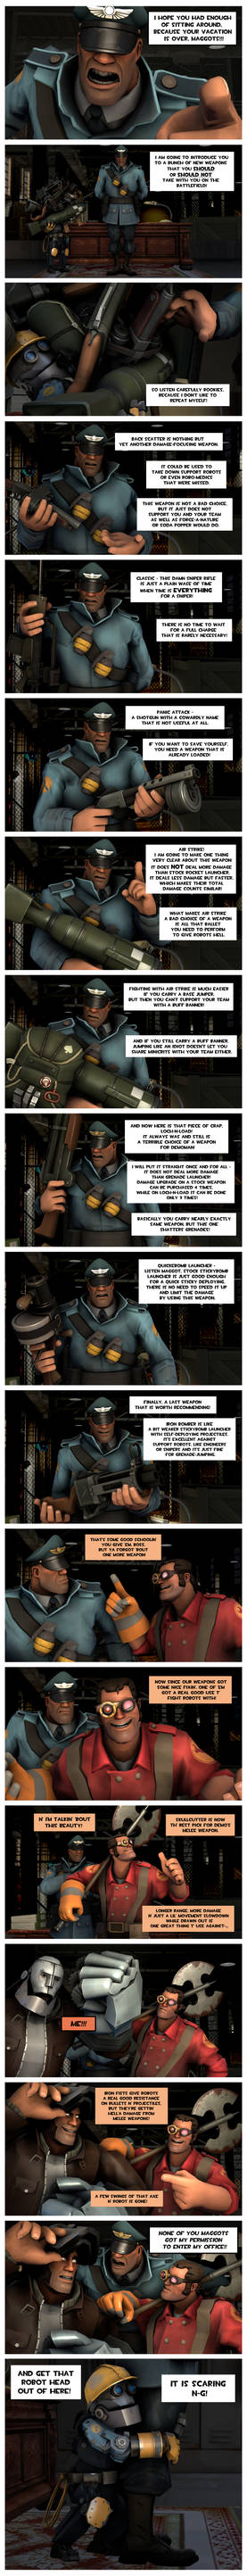 Strict Soldier's guide for MvM: Weapons